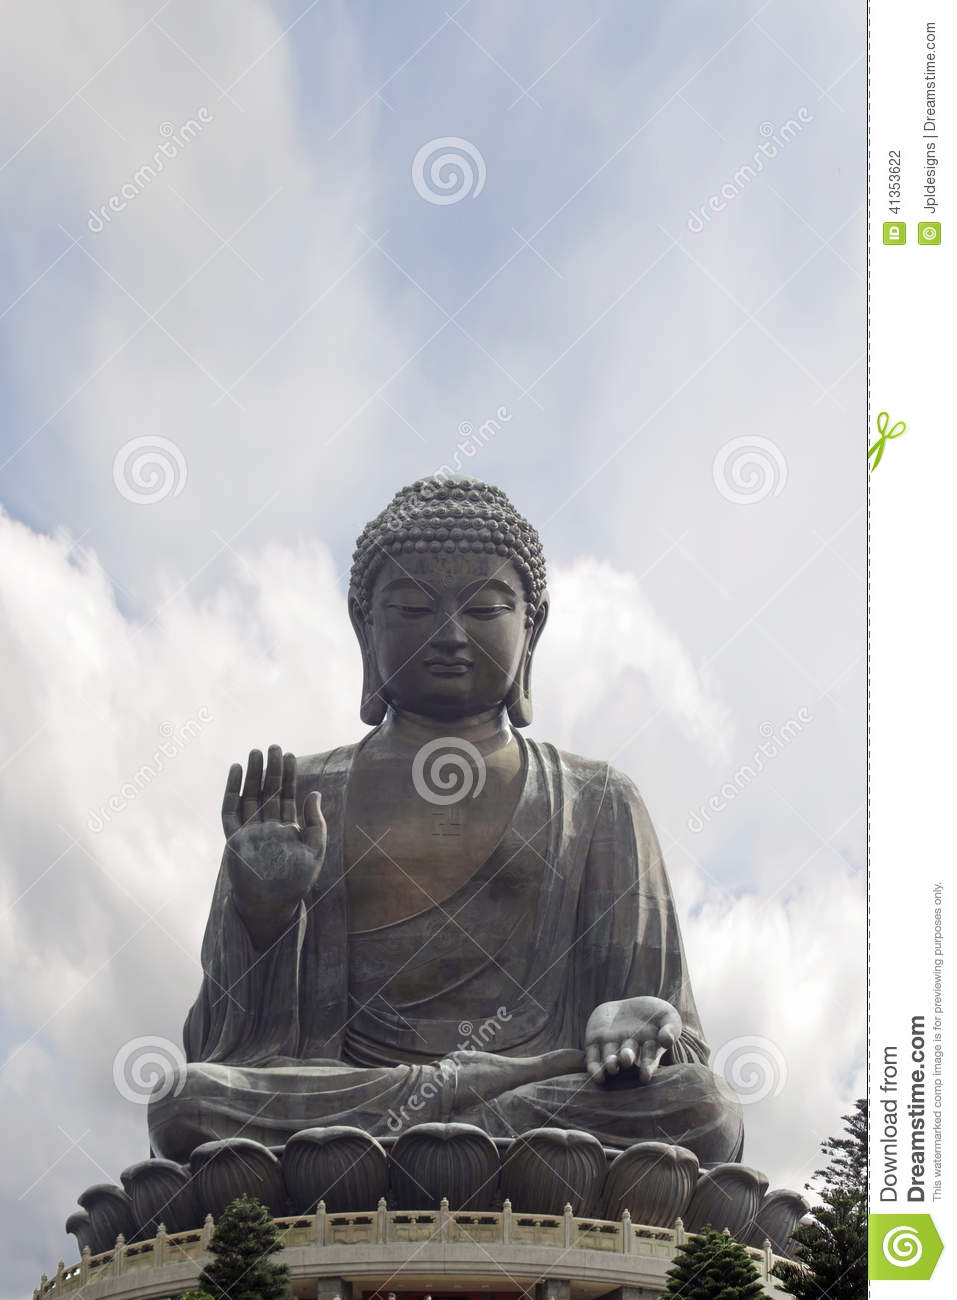 Tian Tan Buddha Sitting en Lotus Throne Closeup